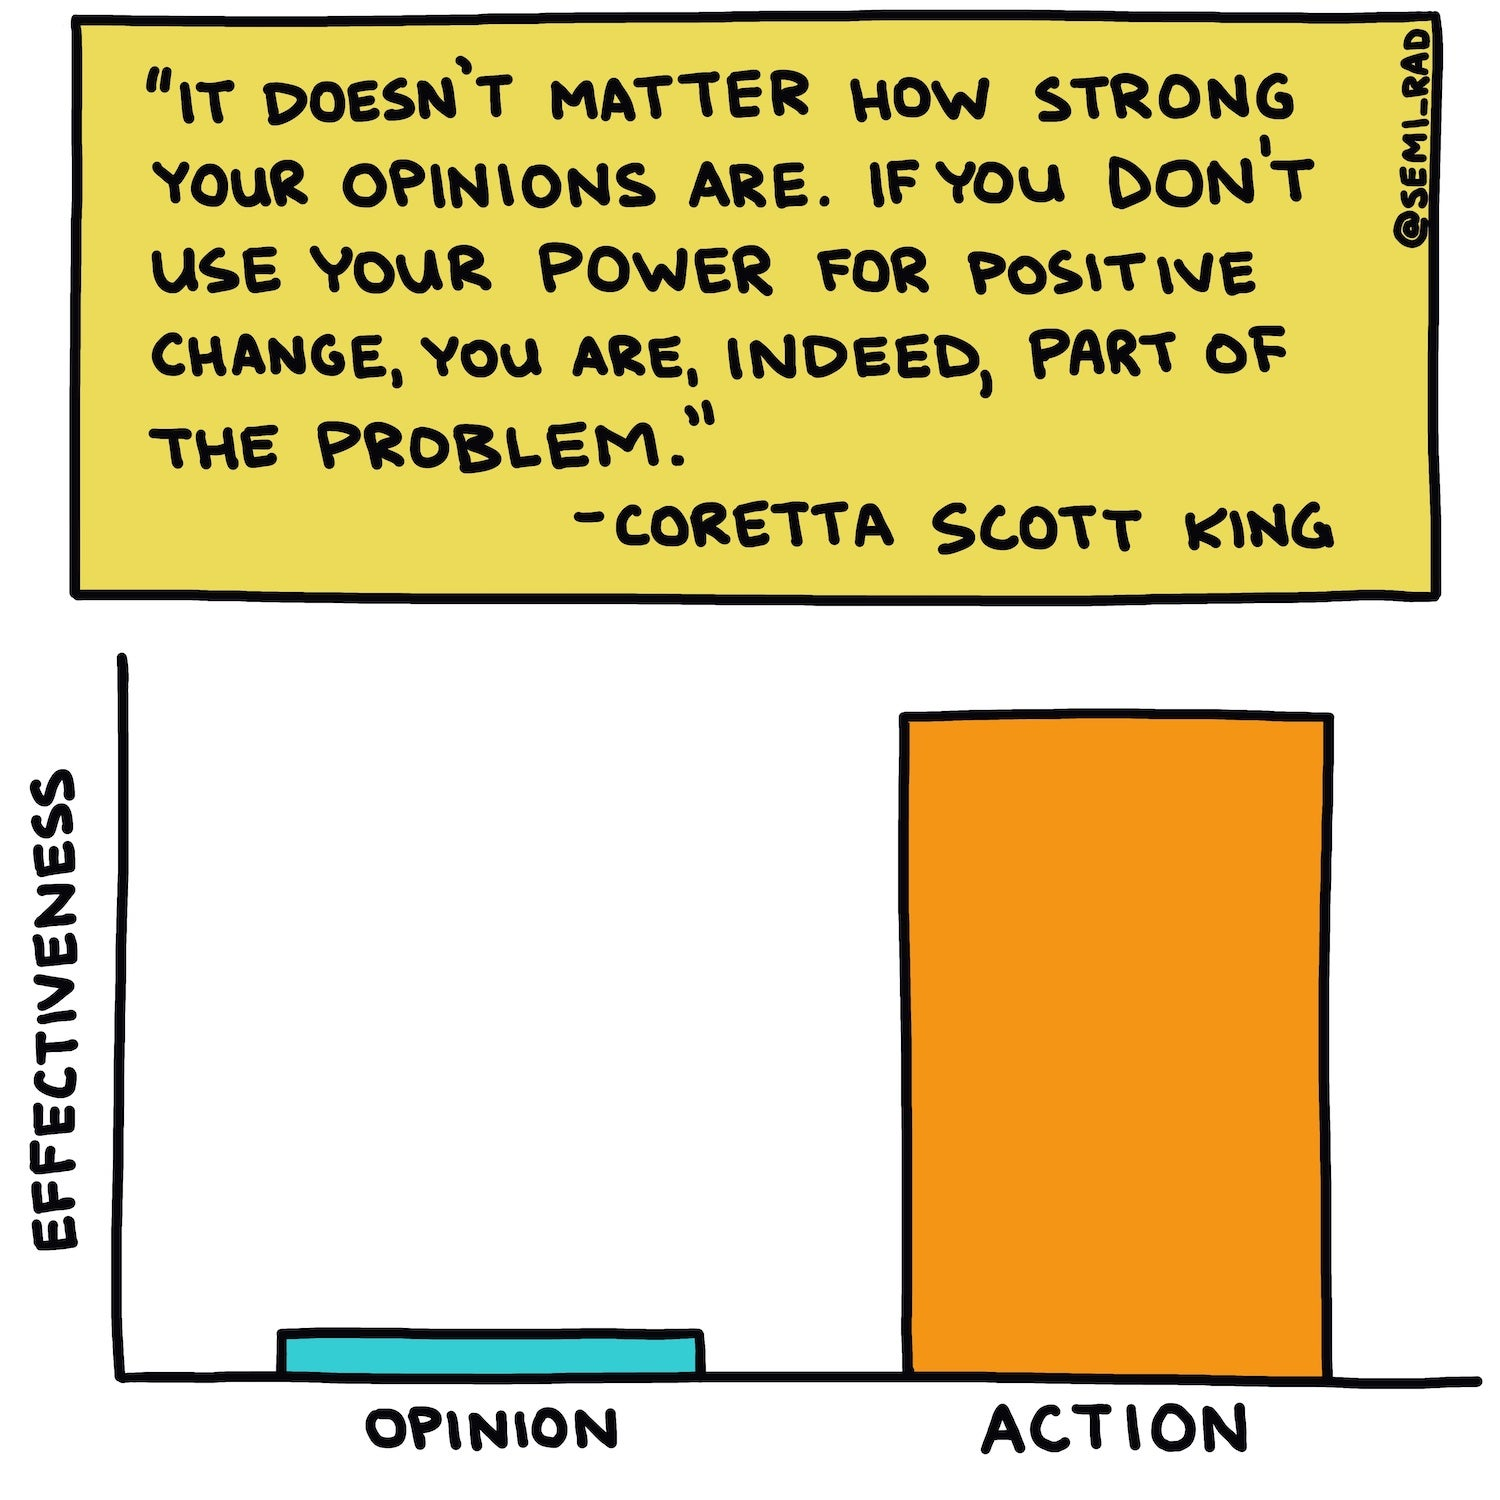 graph about how opinion and action lead to effectiveness with Coretta Scott King quote